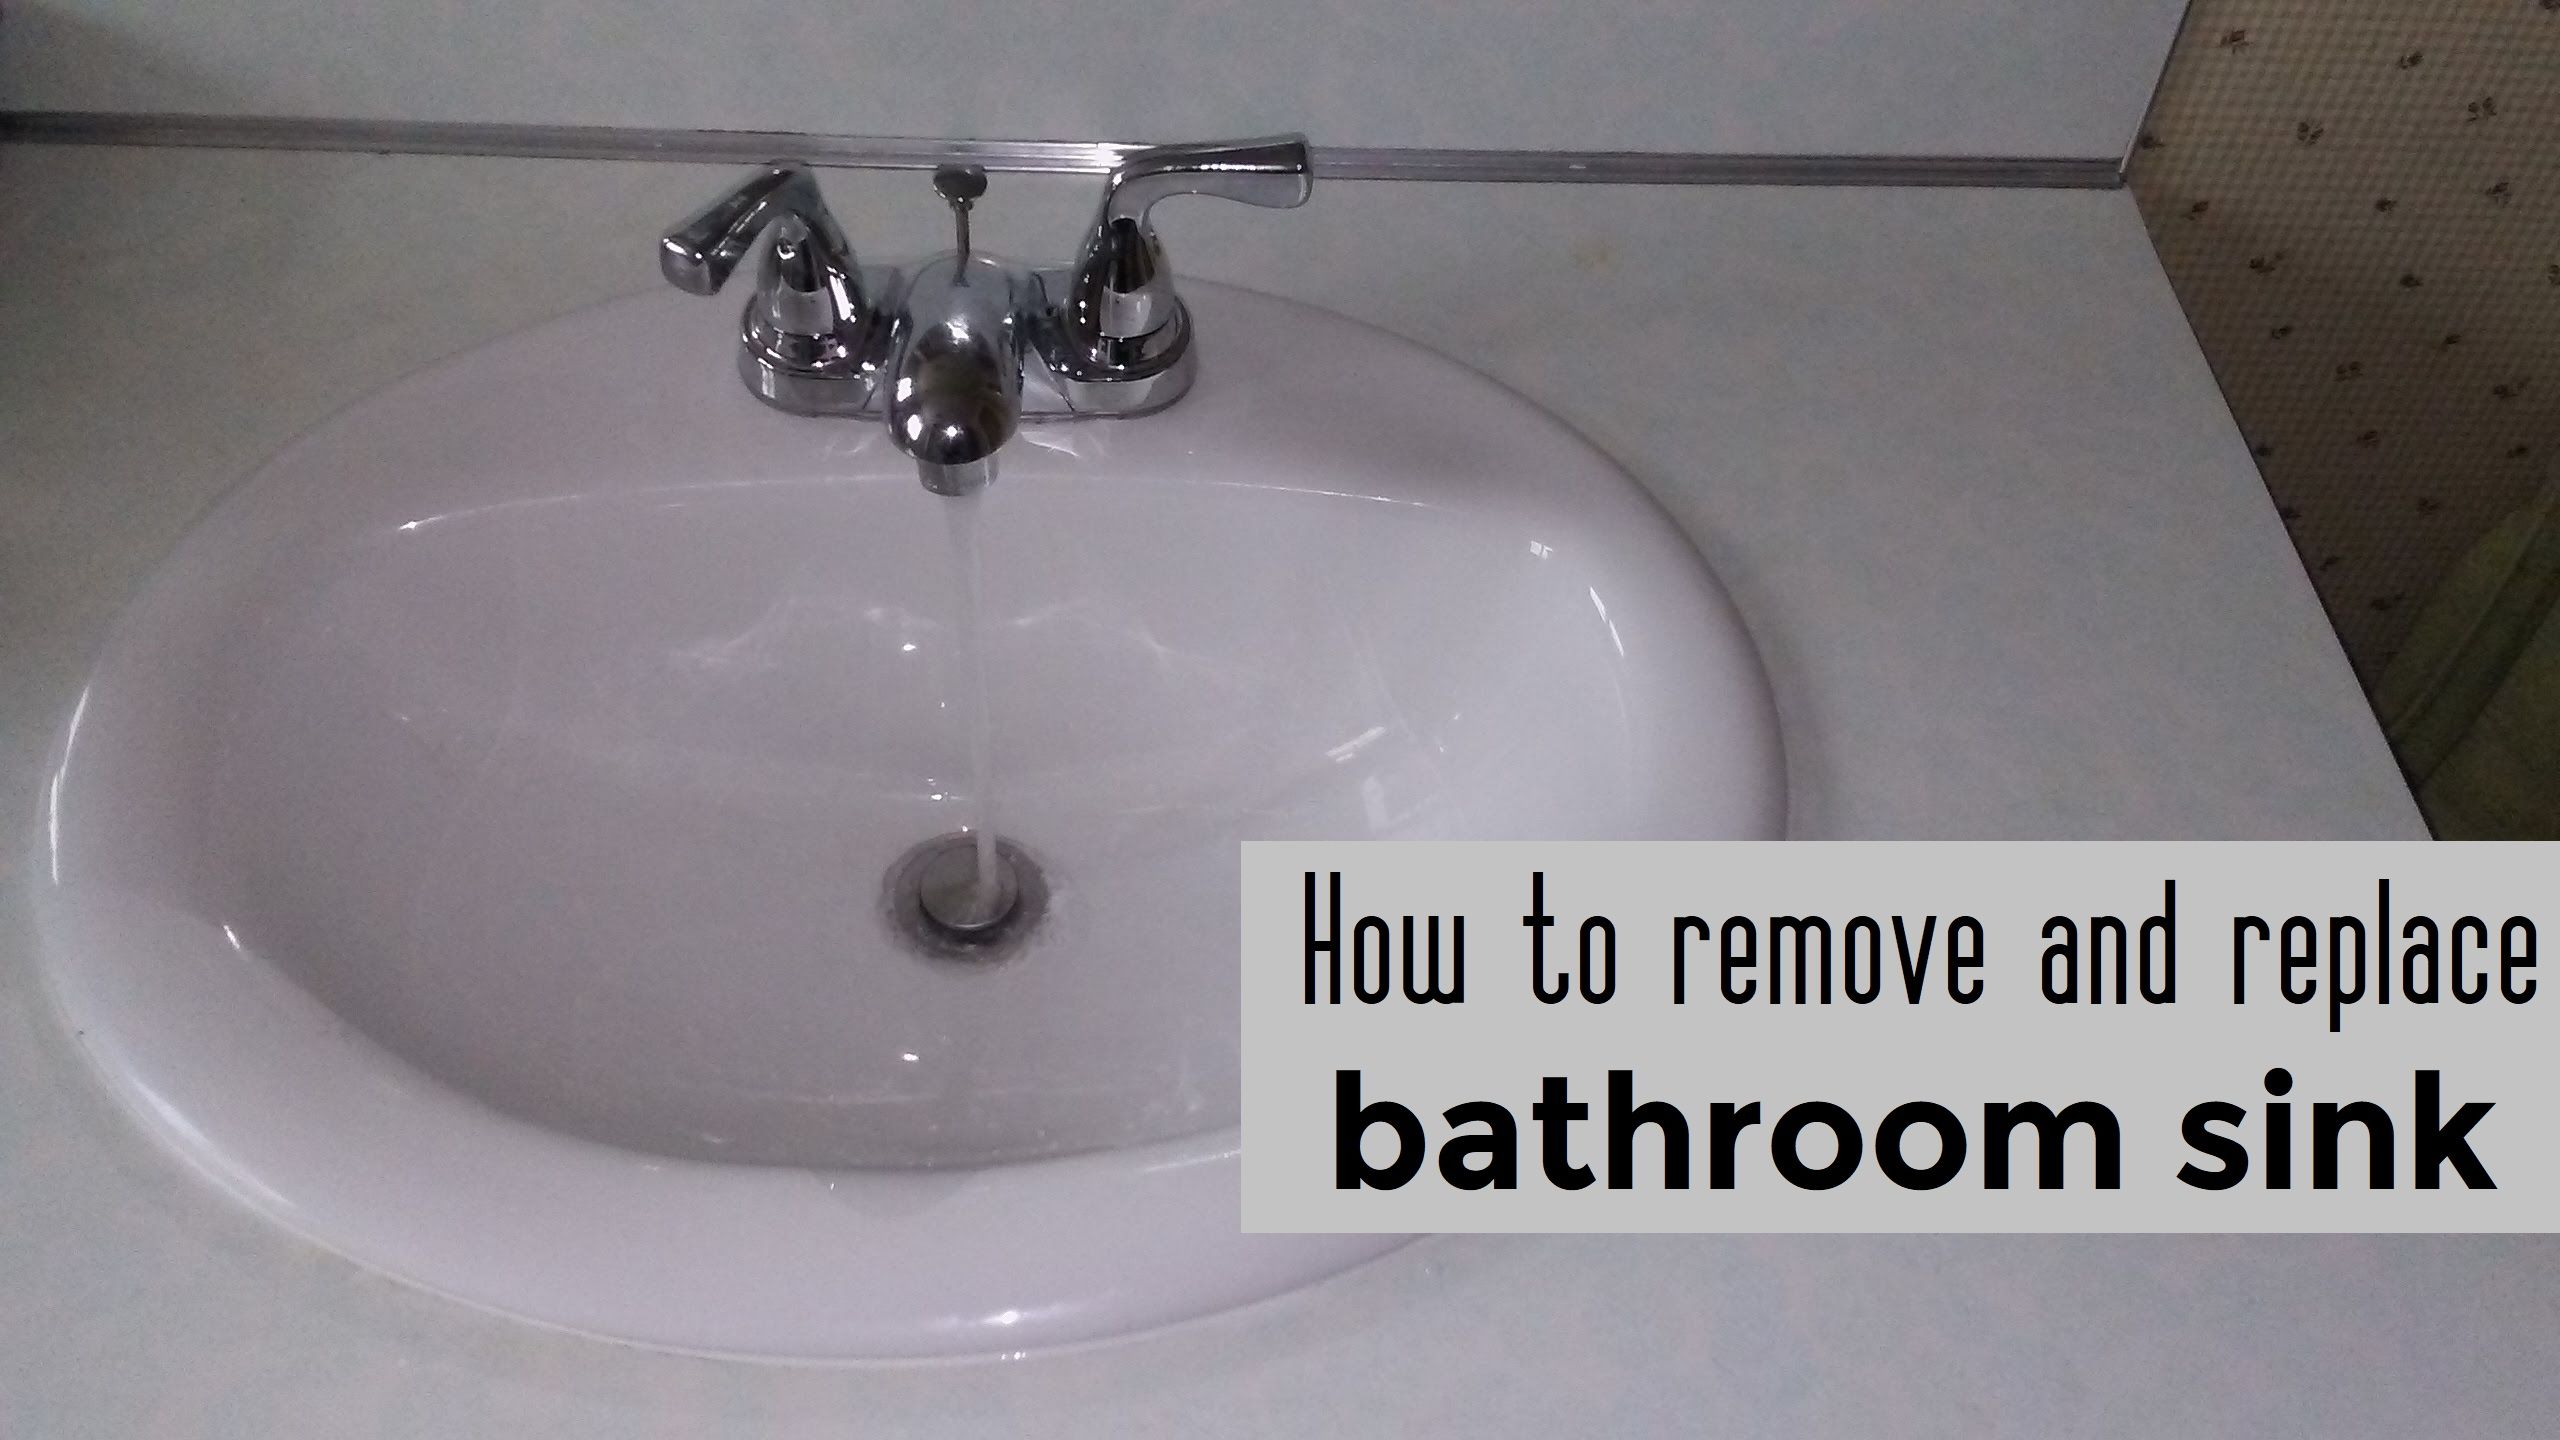 How To Remove And Replace A Bathroom Sink Diy With Images